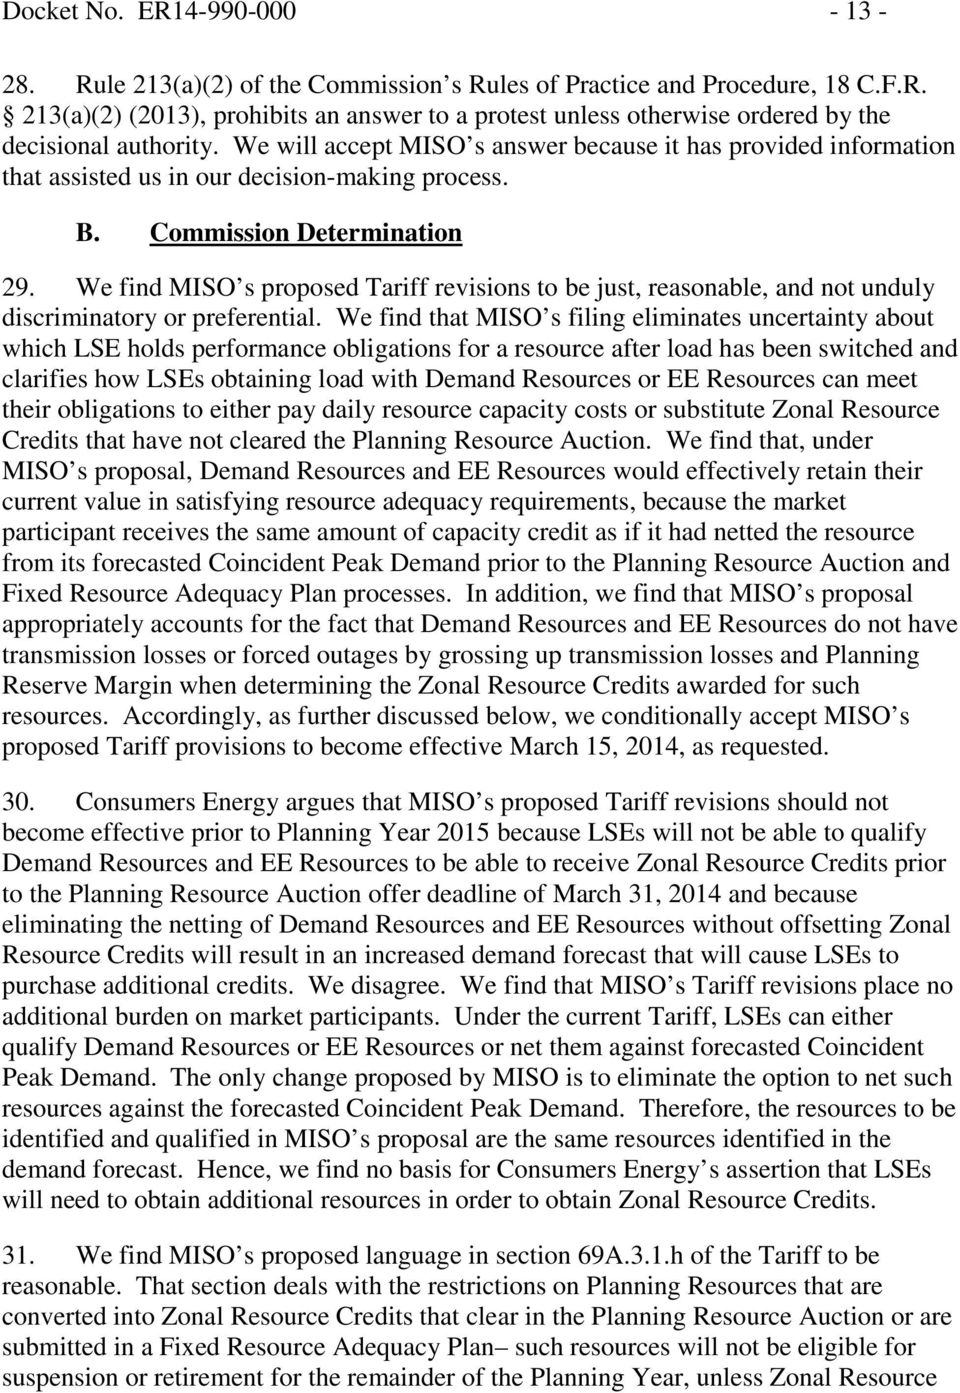 We find MISO s proposed Tariff revisions to be just, reasonable, and not unduly discriminatory or preferential.